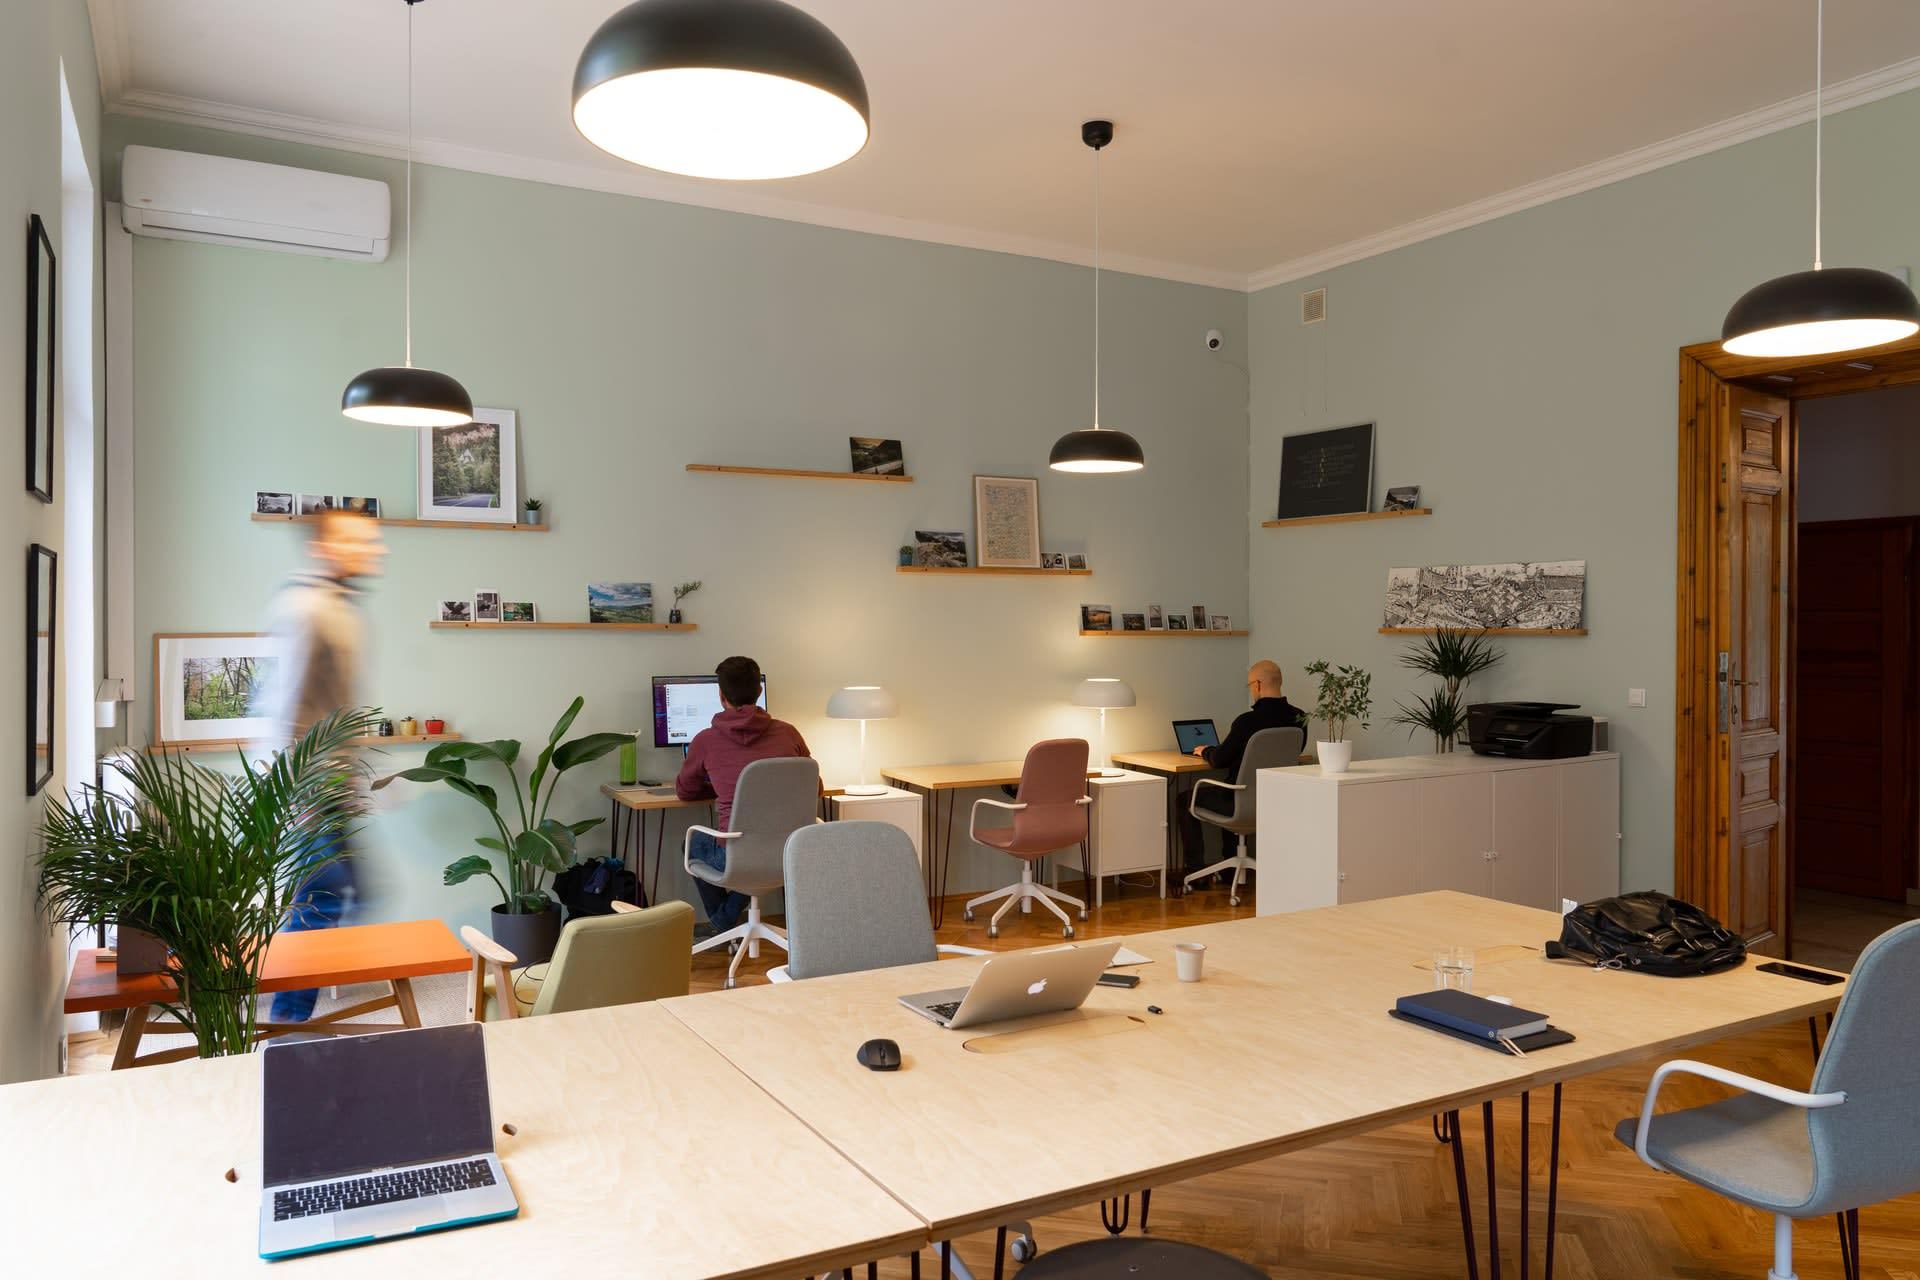 Is A Co-working Space Worth the Cost If You're Already Working From Home?